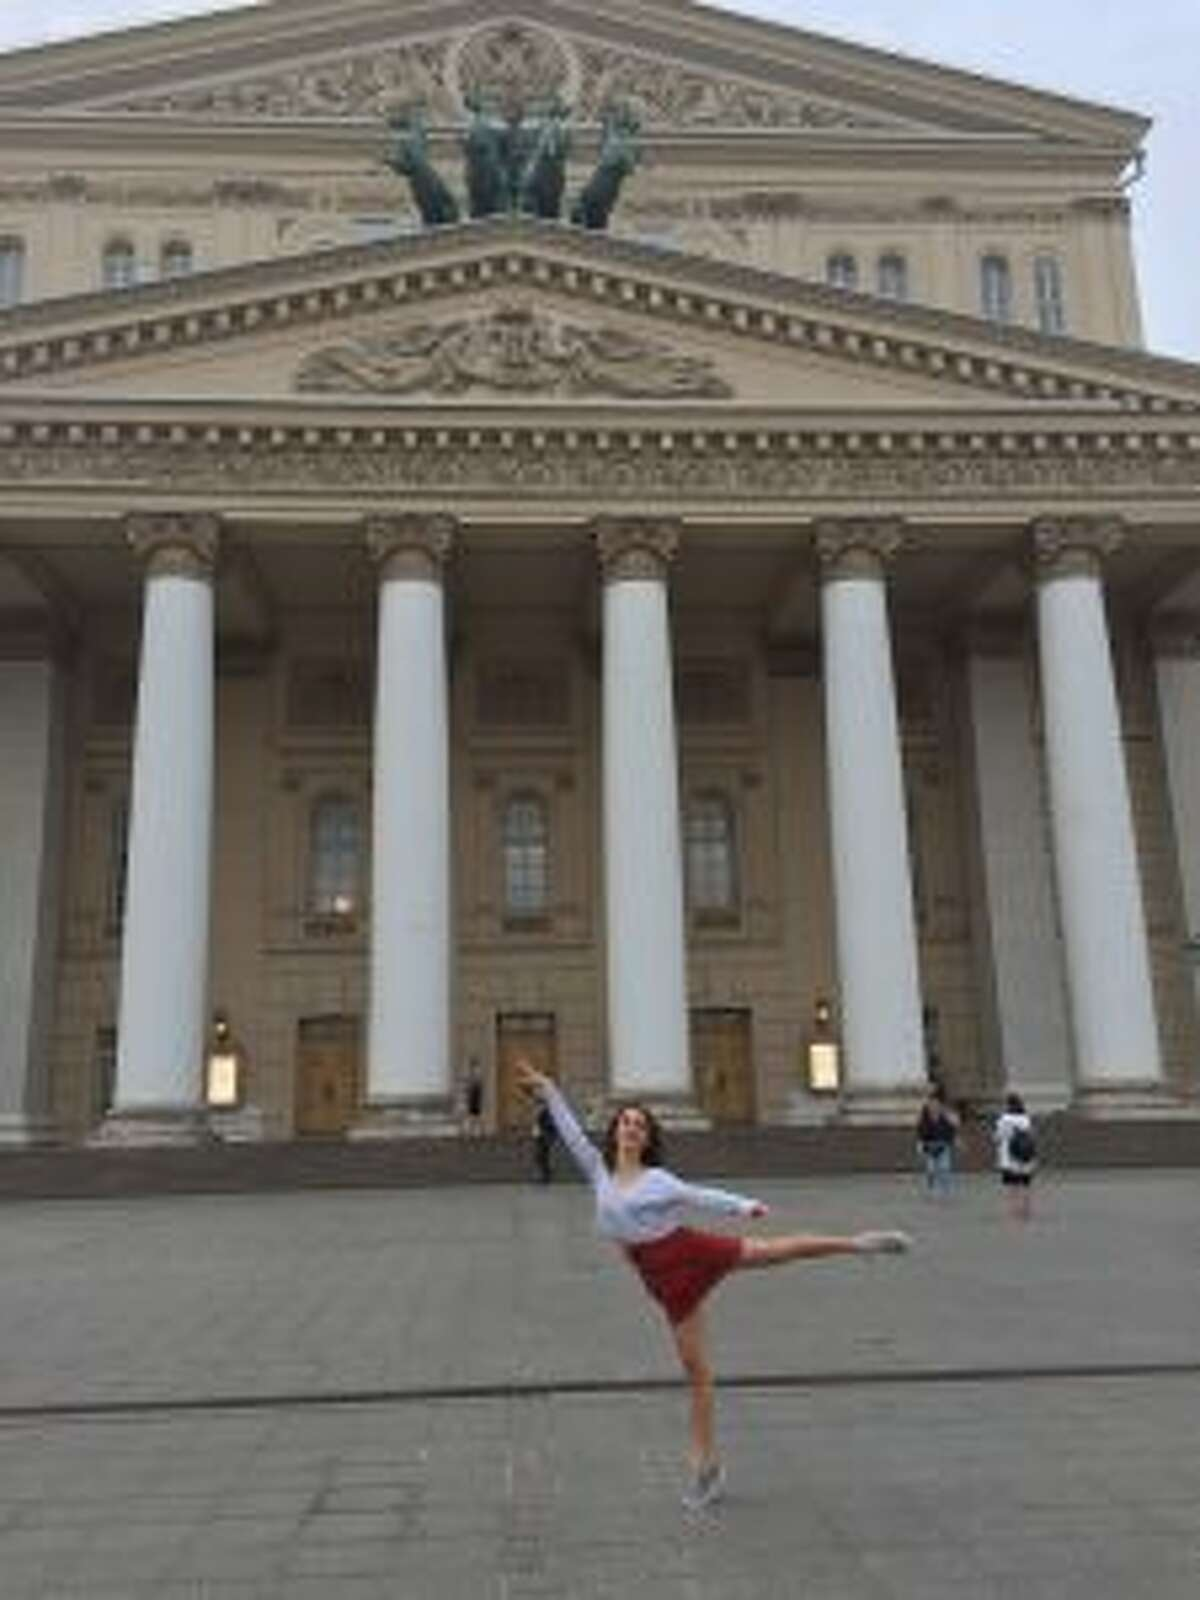 Ava Edmonds in front of The Bolshoi Theatre in Moscow during the summer of 2018.